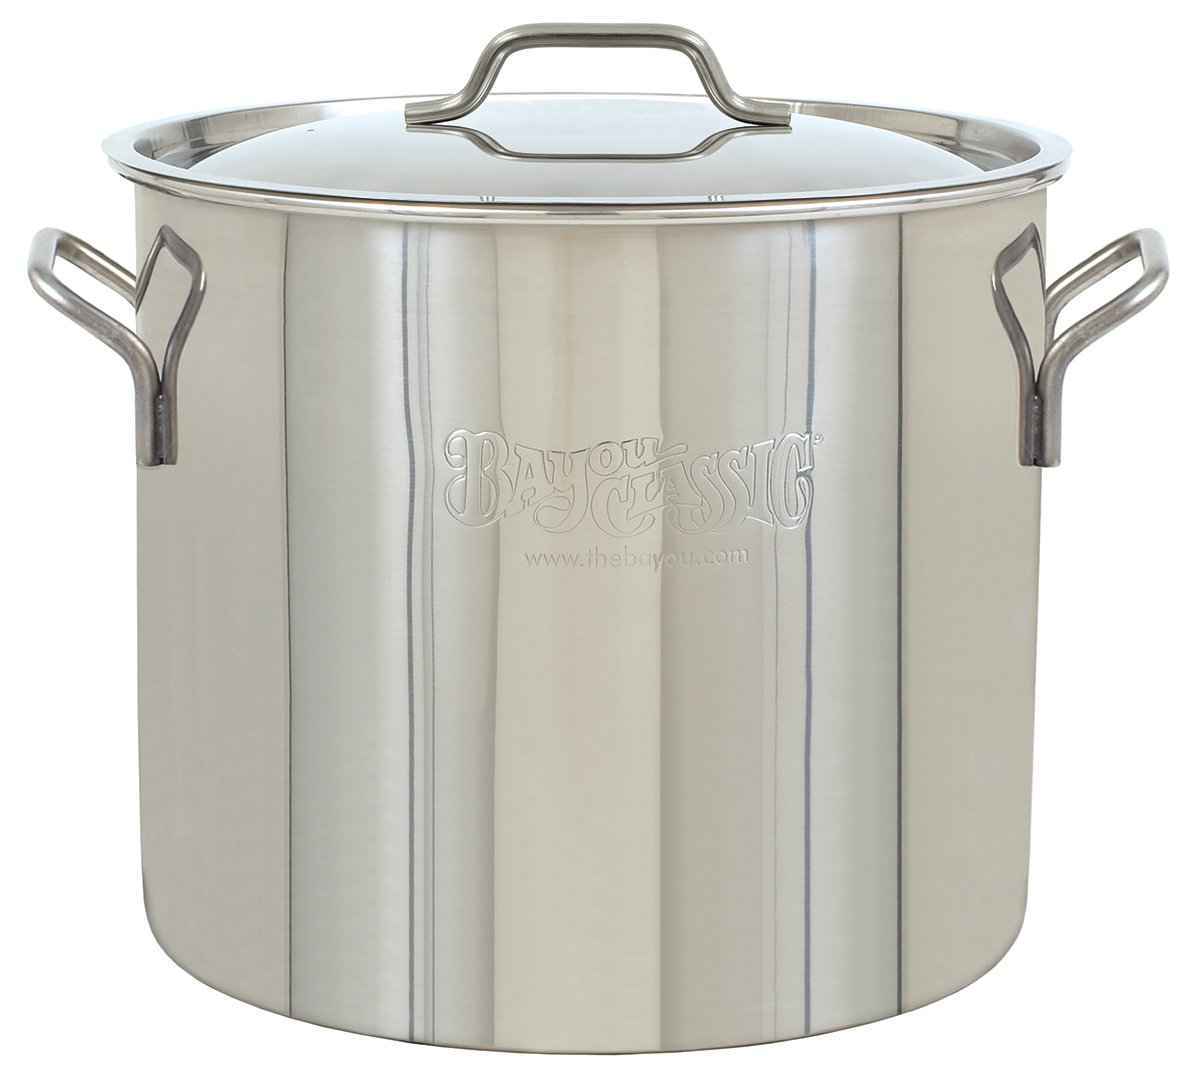 Bayou Classic 1420 Brew Kettle, 20 Quart, Stainless Steel by Bayou Classic